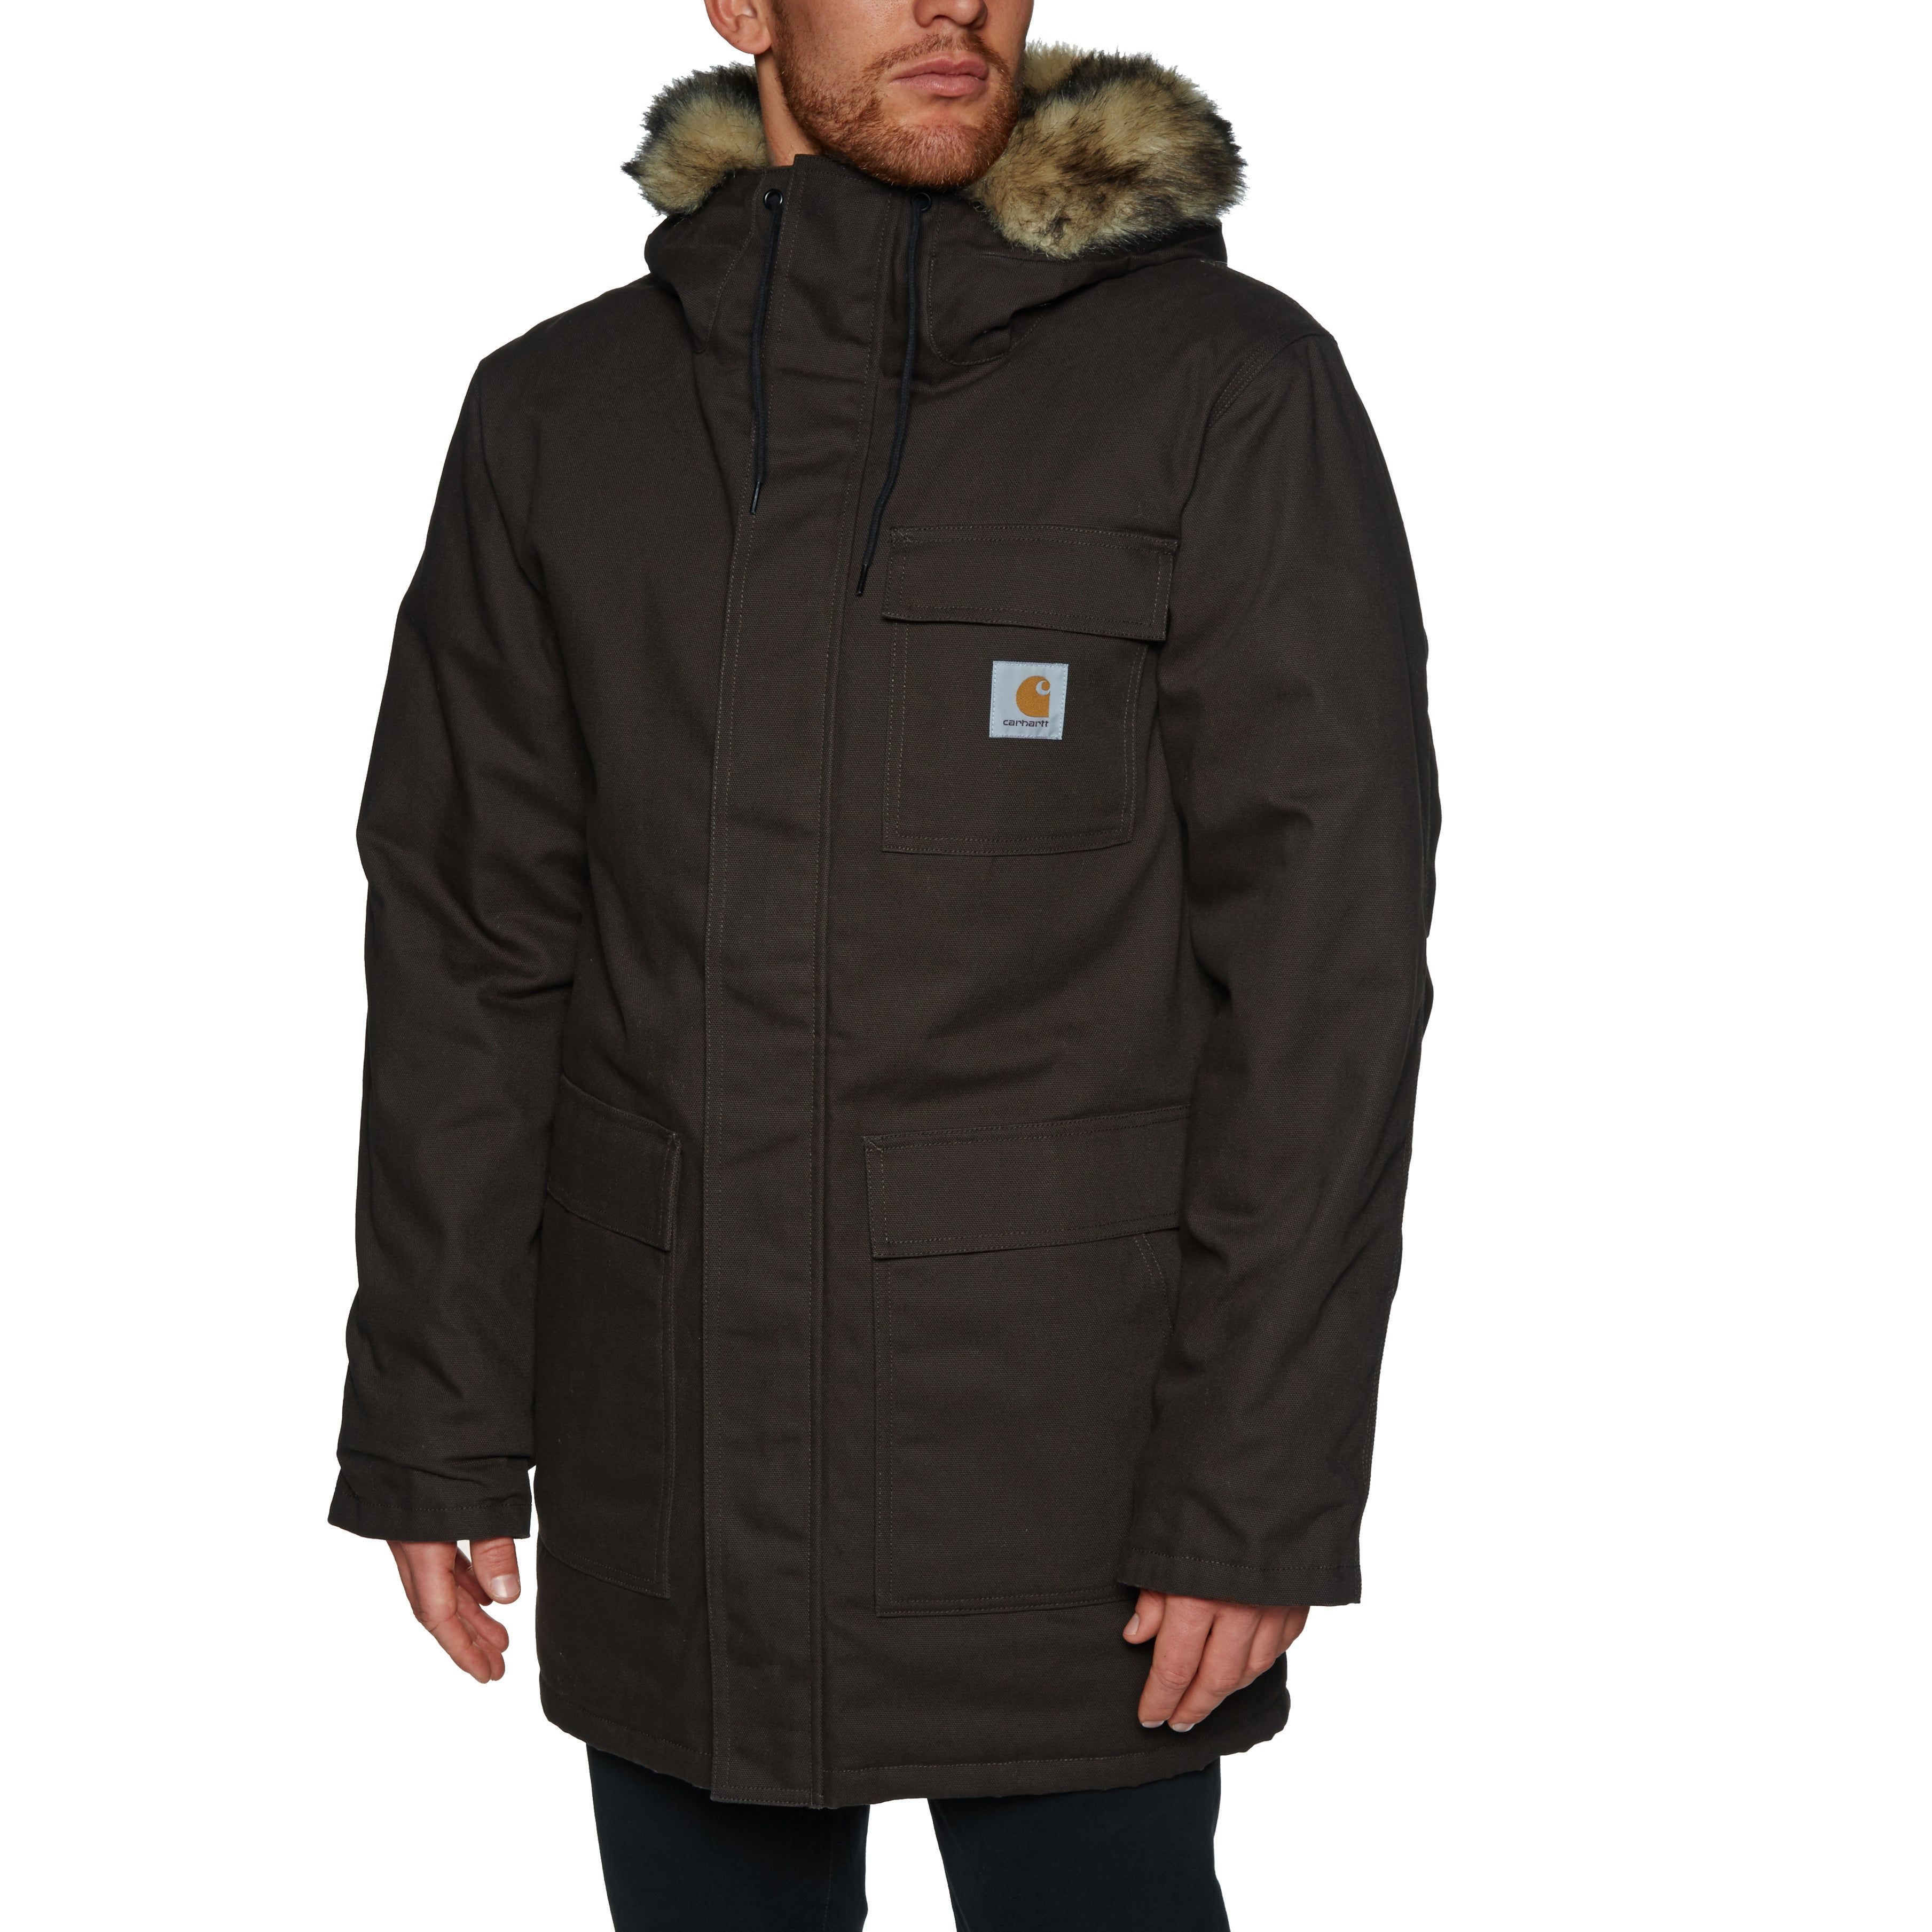 The Carhartt Siberian Parka Jacket is now in stock from the